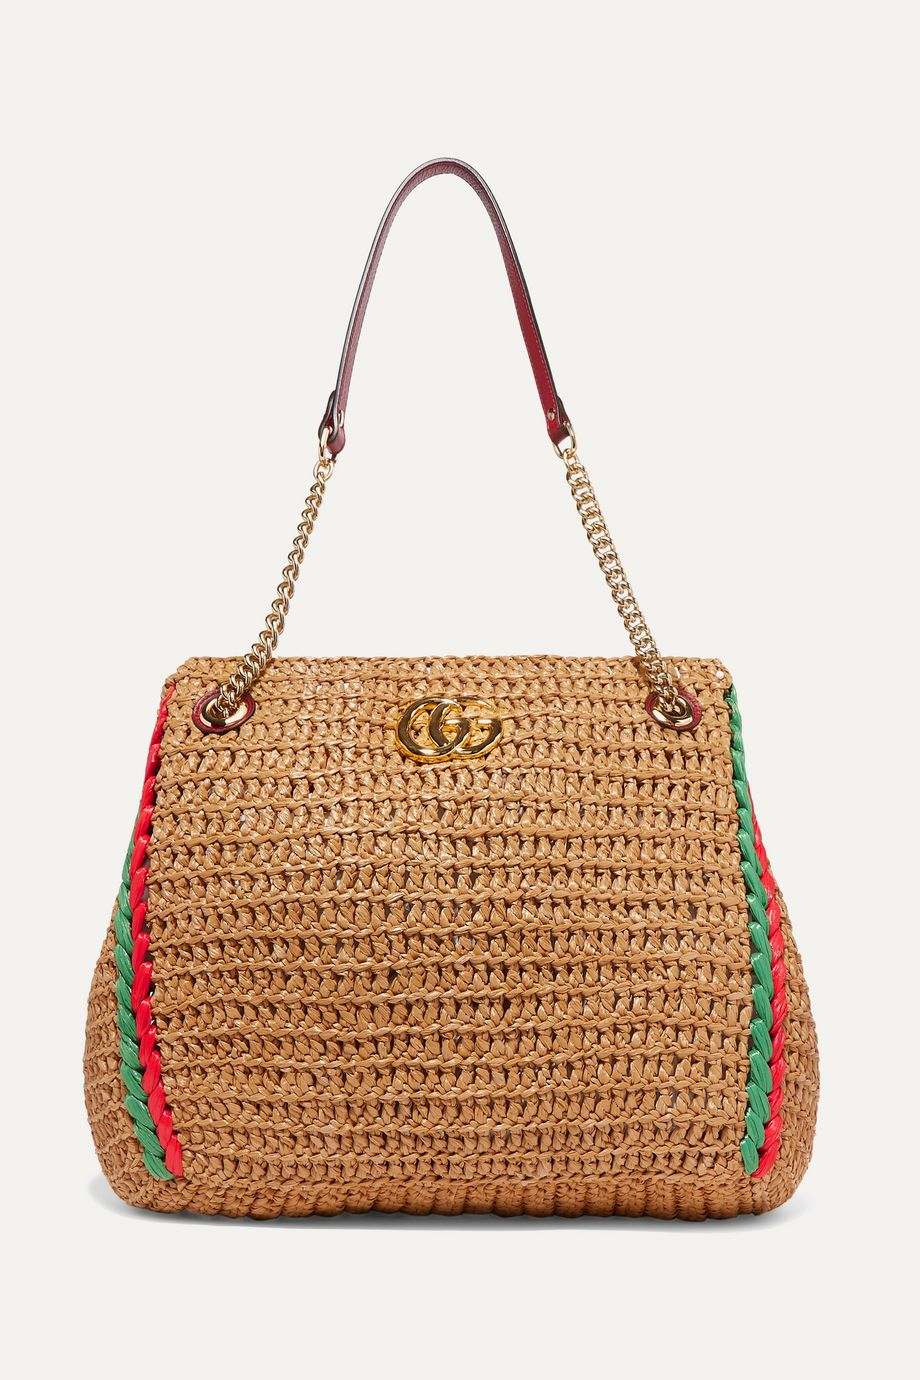 Gucci GG Marmont large leather-trimmed raffia tote